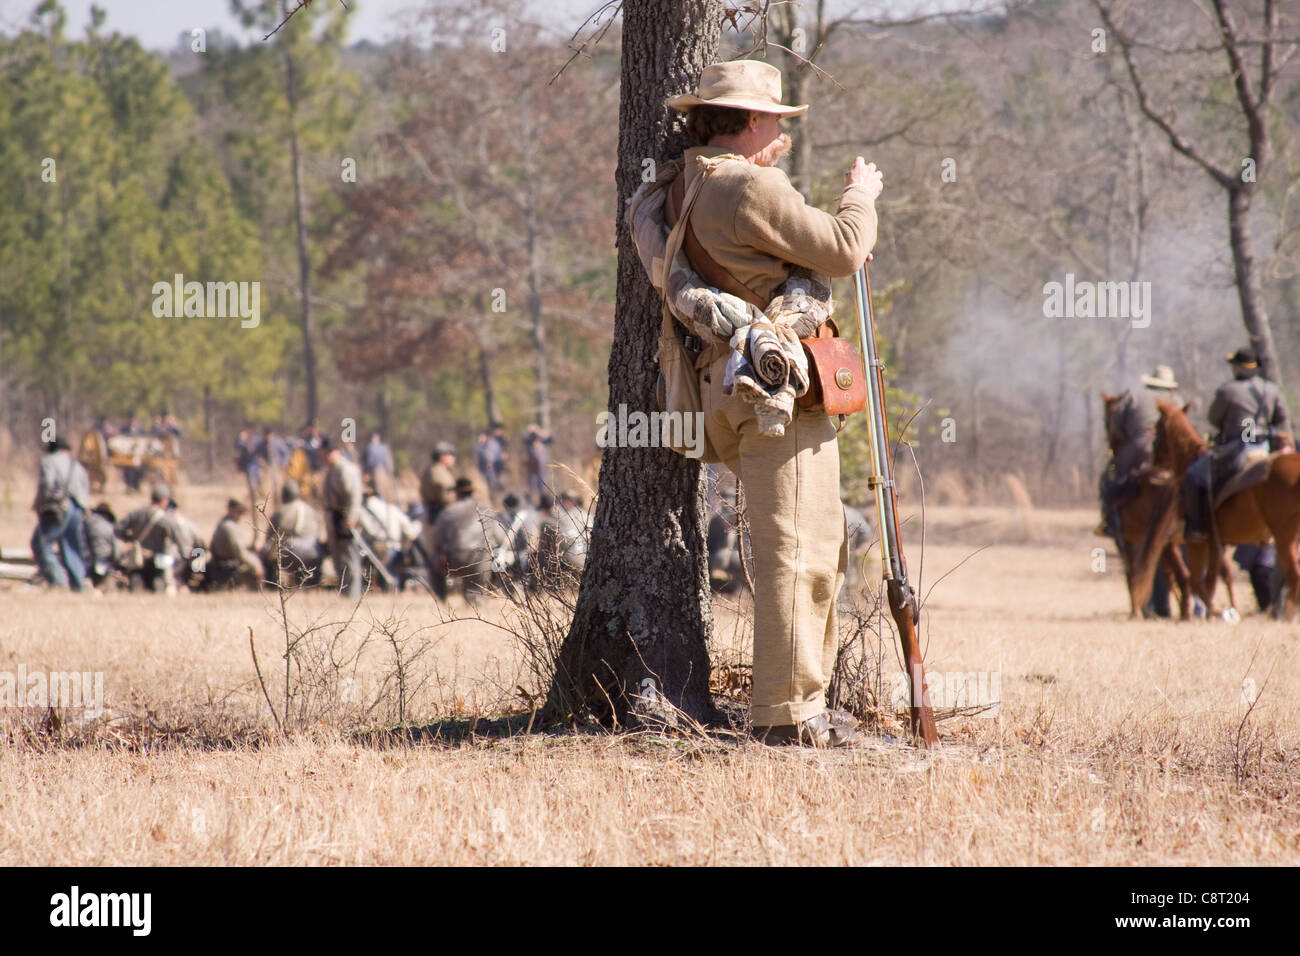 Revolutionary war scout watching the battle from behind a tree - Stock Image